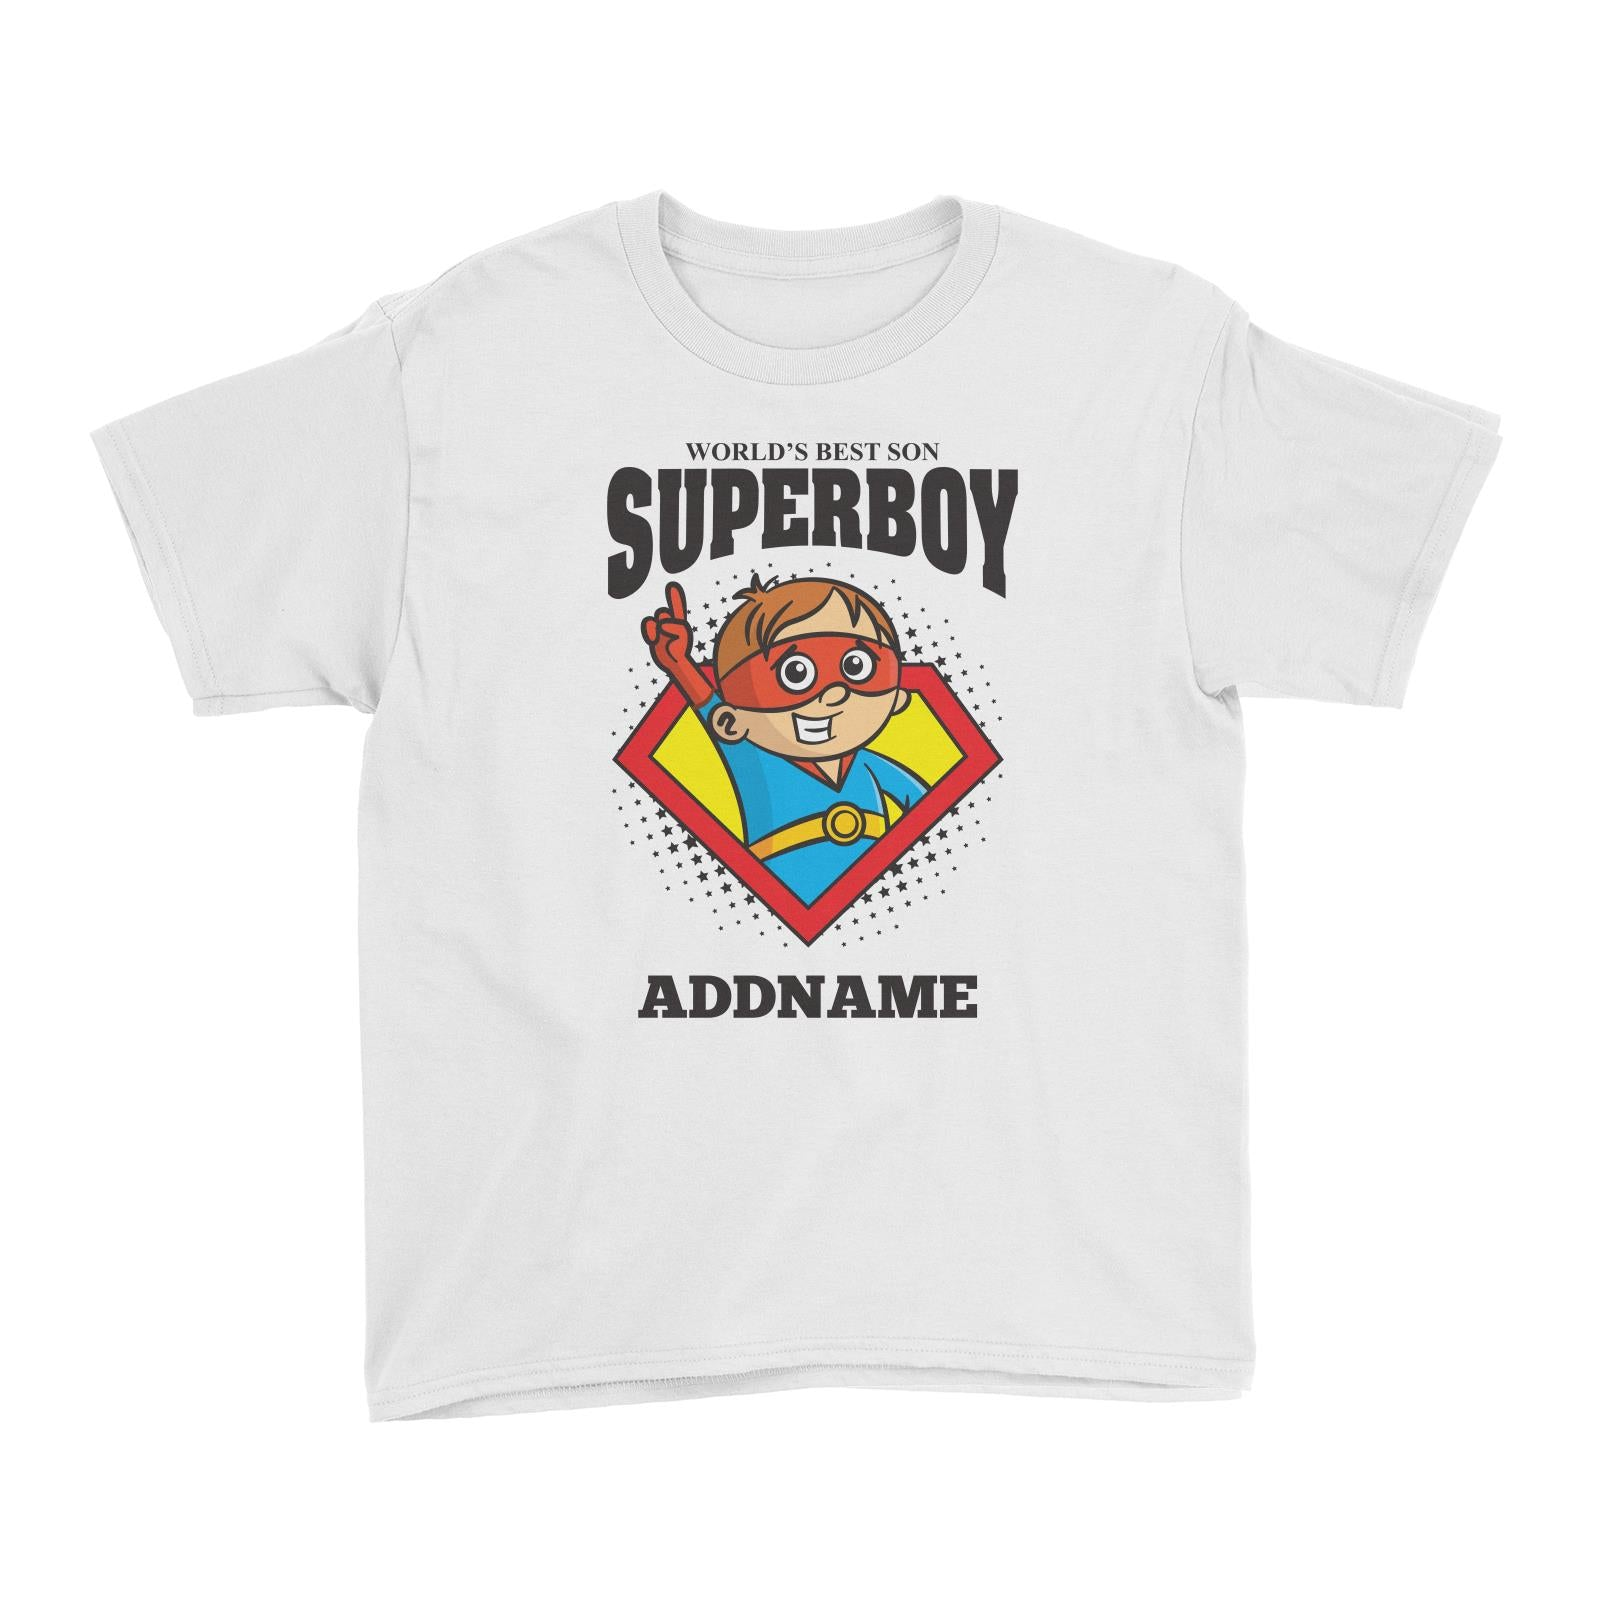 Best Son Superboy Boy (FLASH DEAL) Kid's T-Shirt Personalizable Designs Matching Family Superhero Family Edition Superhero